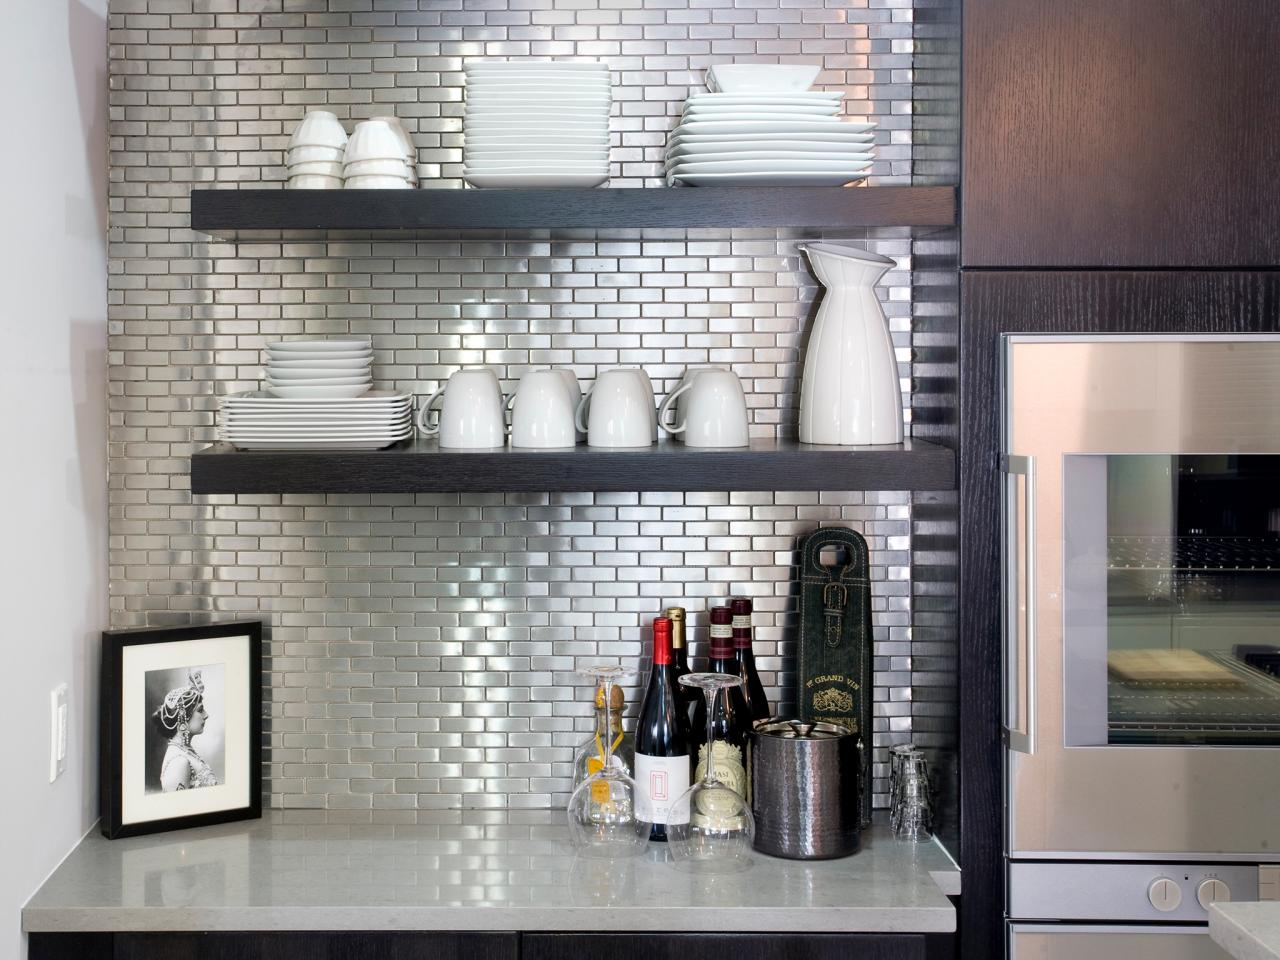 27 Kitchen Backsplash Designs - Home Dreamy on 4x8 subway tile backsplash, subway glass tile, gallery of subway tile backsplash, glass backsplash, brown subway tile backsplash, subway tile outlet, cream subway tile backsplash, subway tile kitchen counter, subway tile kitchen white, travertine backsplash, cream beige tile backsplash, subway tile black backsplash, subway tile colors, subway tile fireplace, decorative tile backsplash, subway tile backsplash ideas, subway tile background, subway tile bathroom, subway tile patterns, herringbone subway tile backsplash,